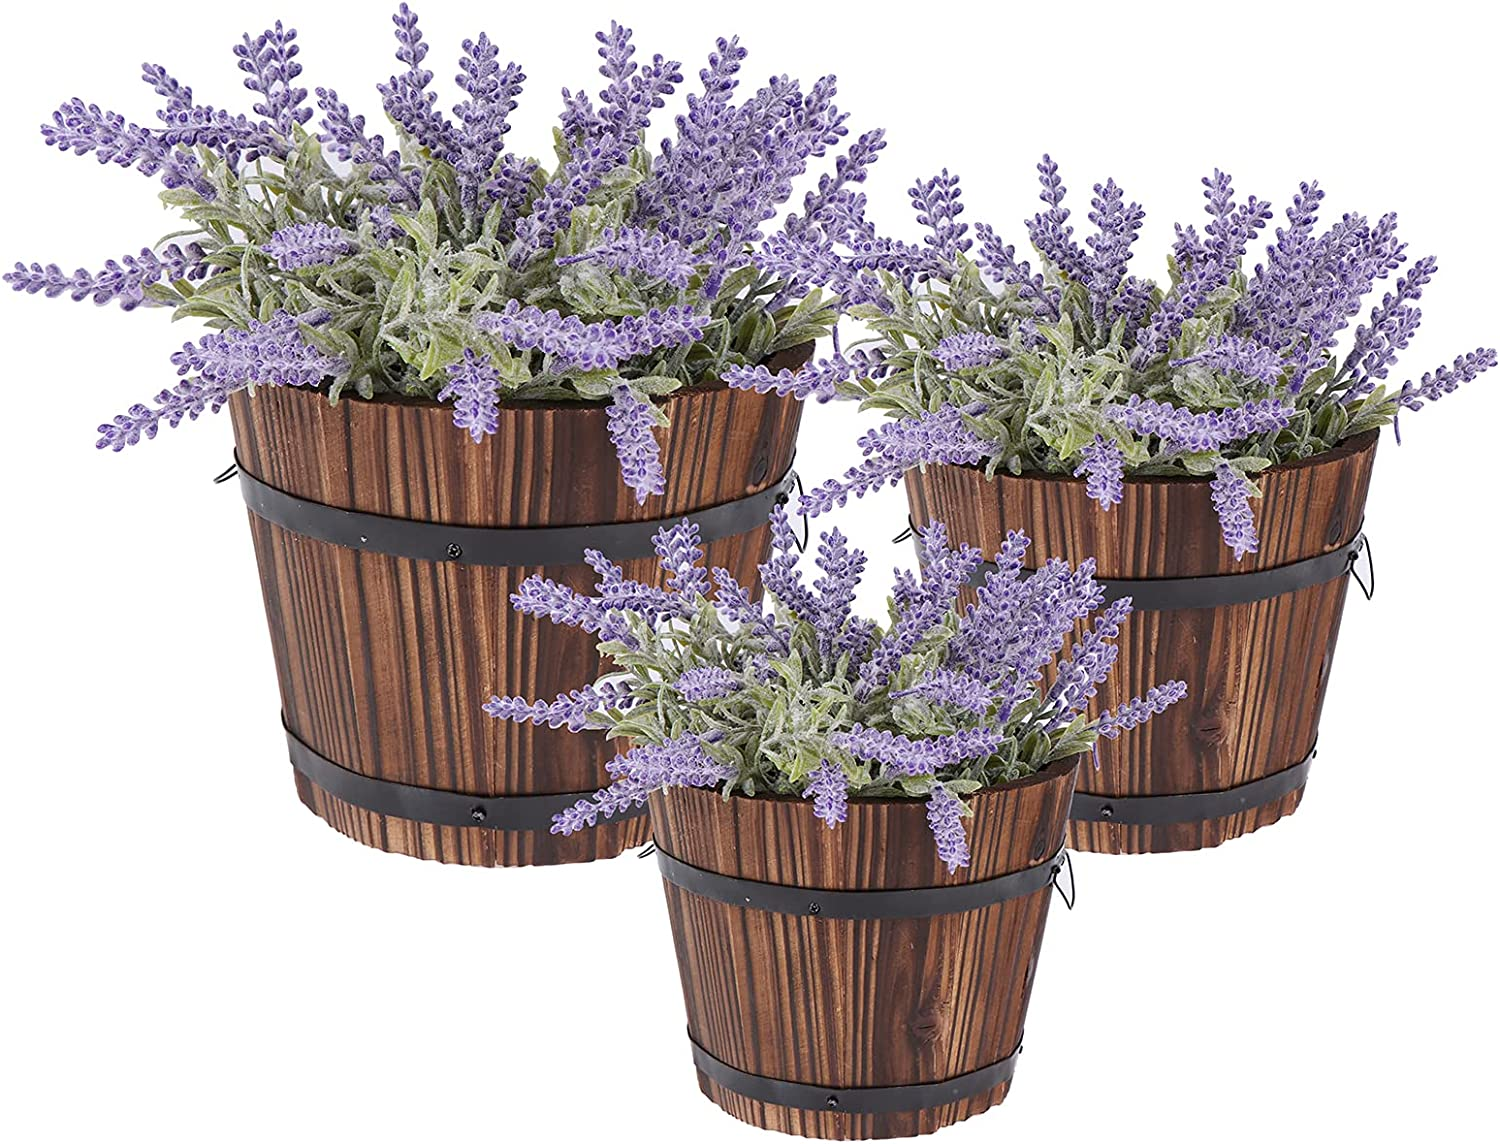 3 Pcs Rustic Wooden Barrels Planters Whiskey Barrels Bucket with Handle Flower Planter Plant Pots Boxes Container Water Wishing Well Pail Garden Backyard Primitive Planter Outdoor Indoor Home Decor